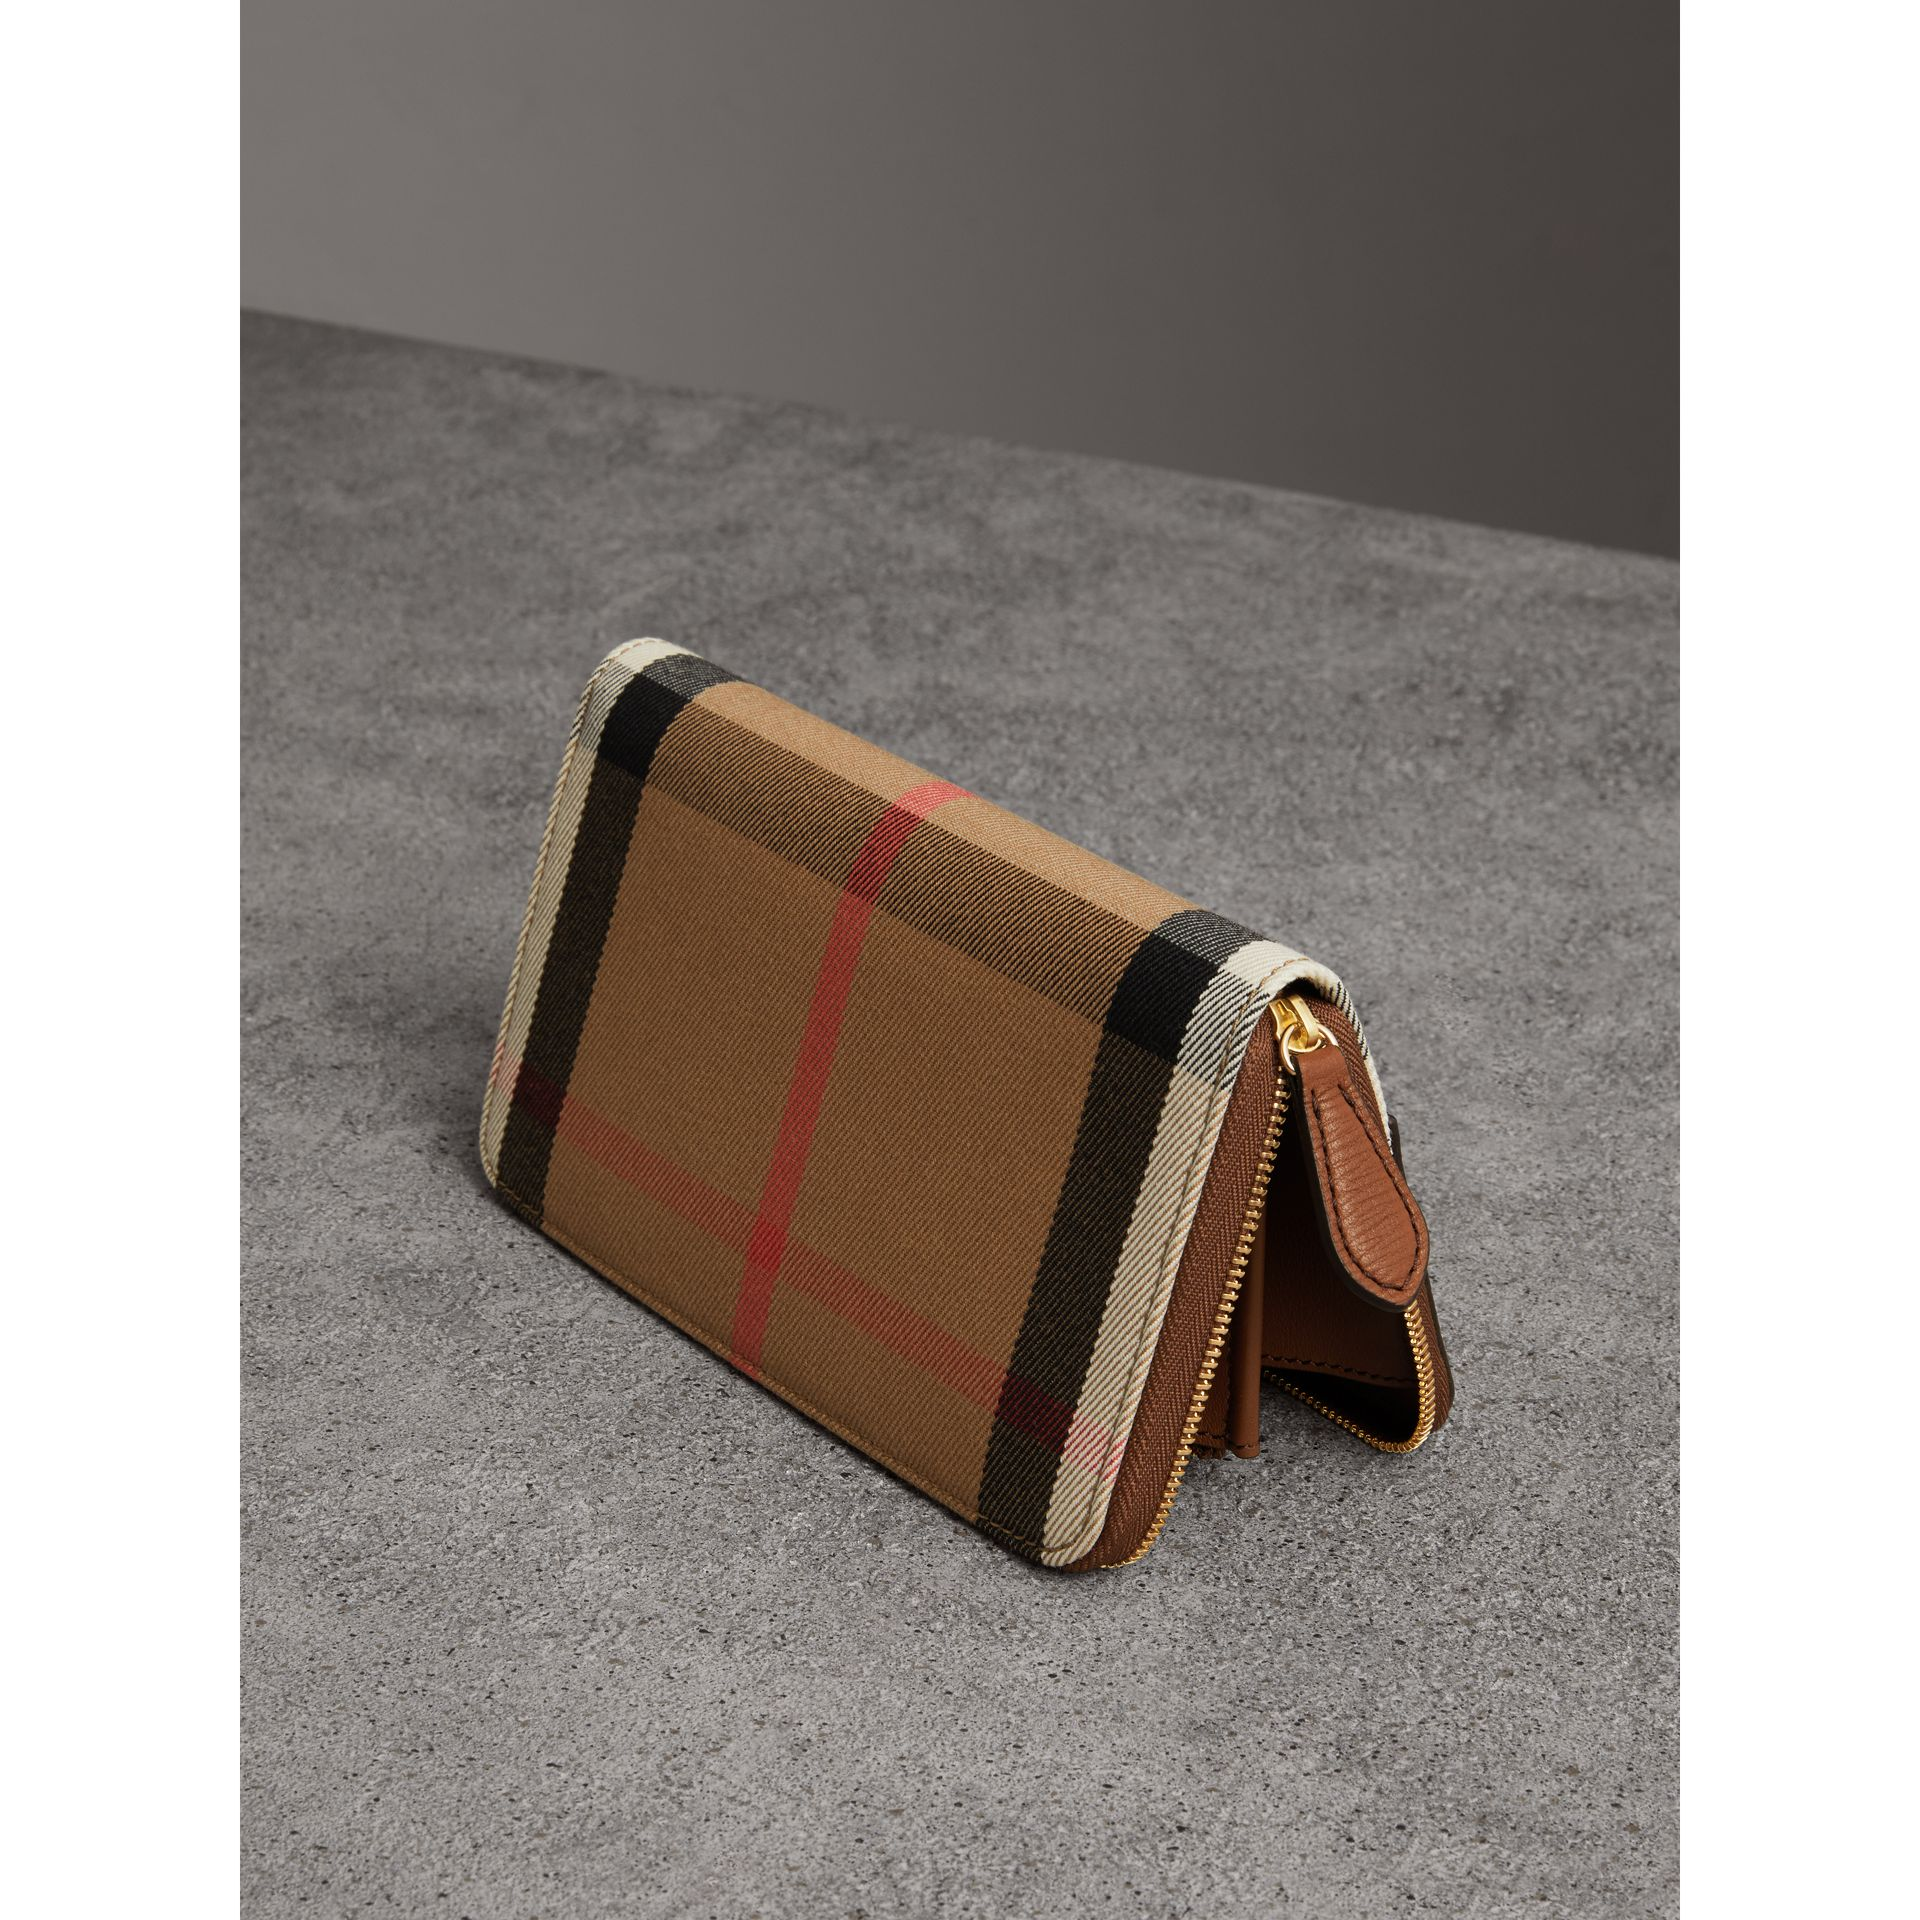 House Check and Leather Ziparound Wallet in Brown Ochre - Women | Burberry Hong Kong - gallery image 2